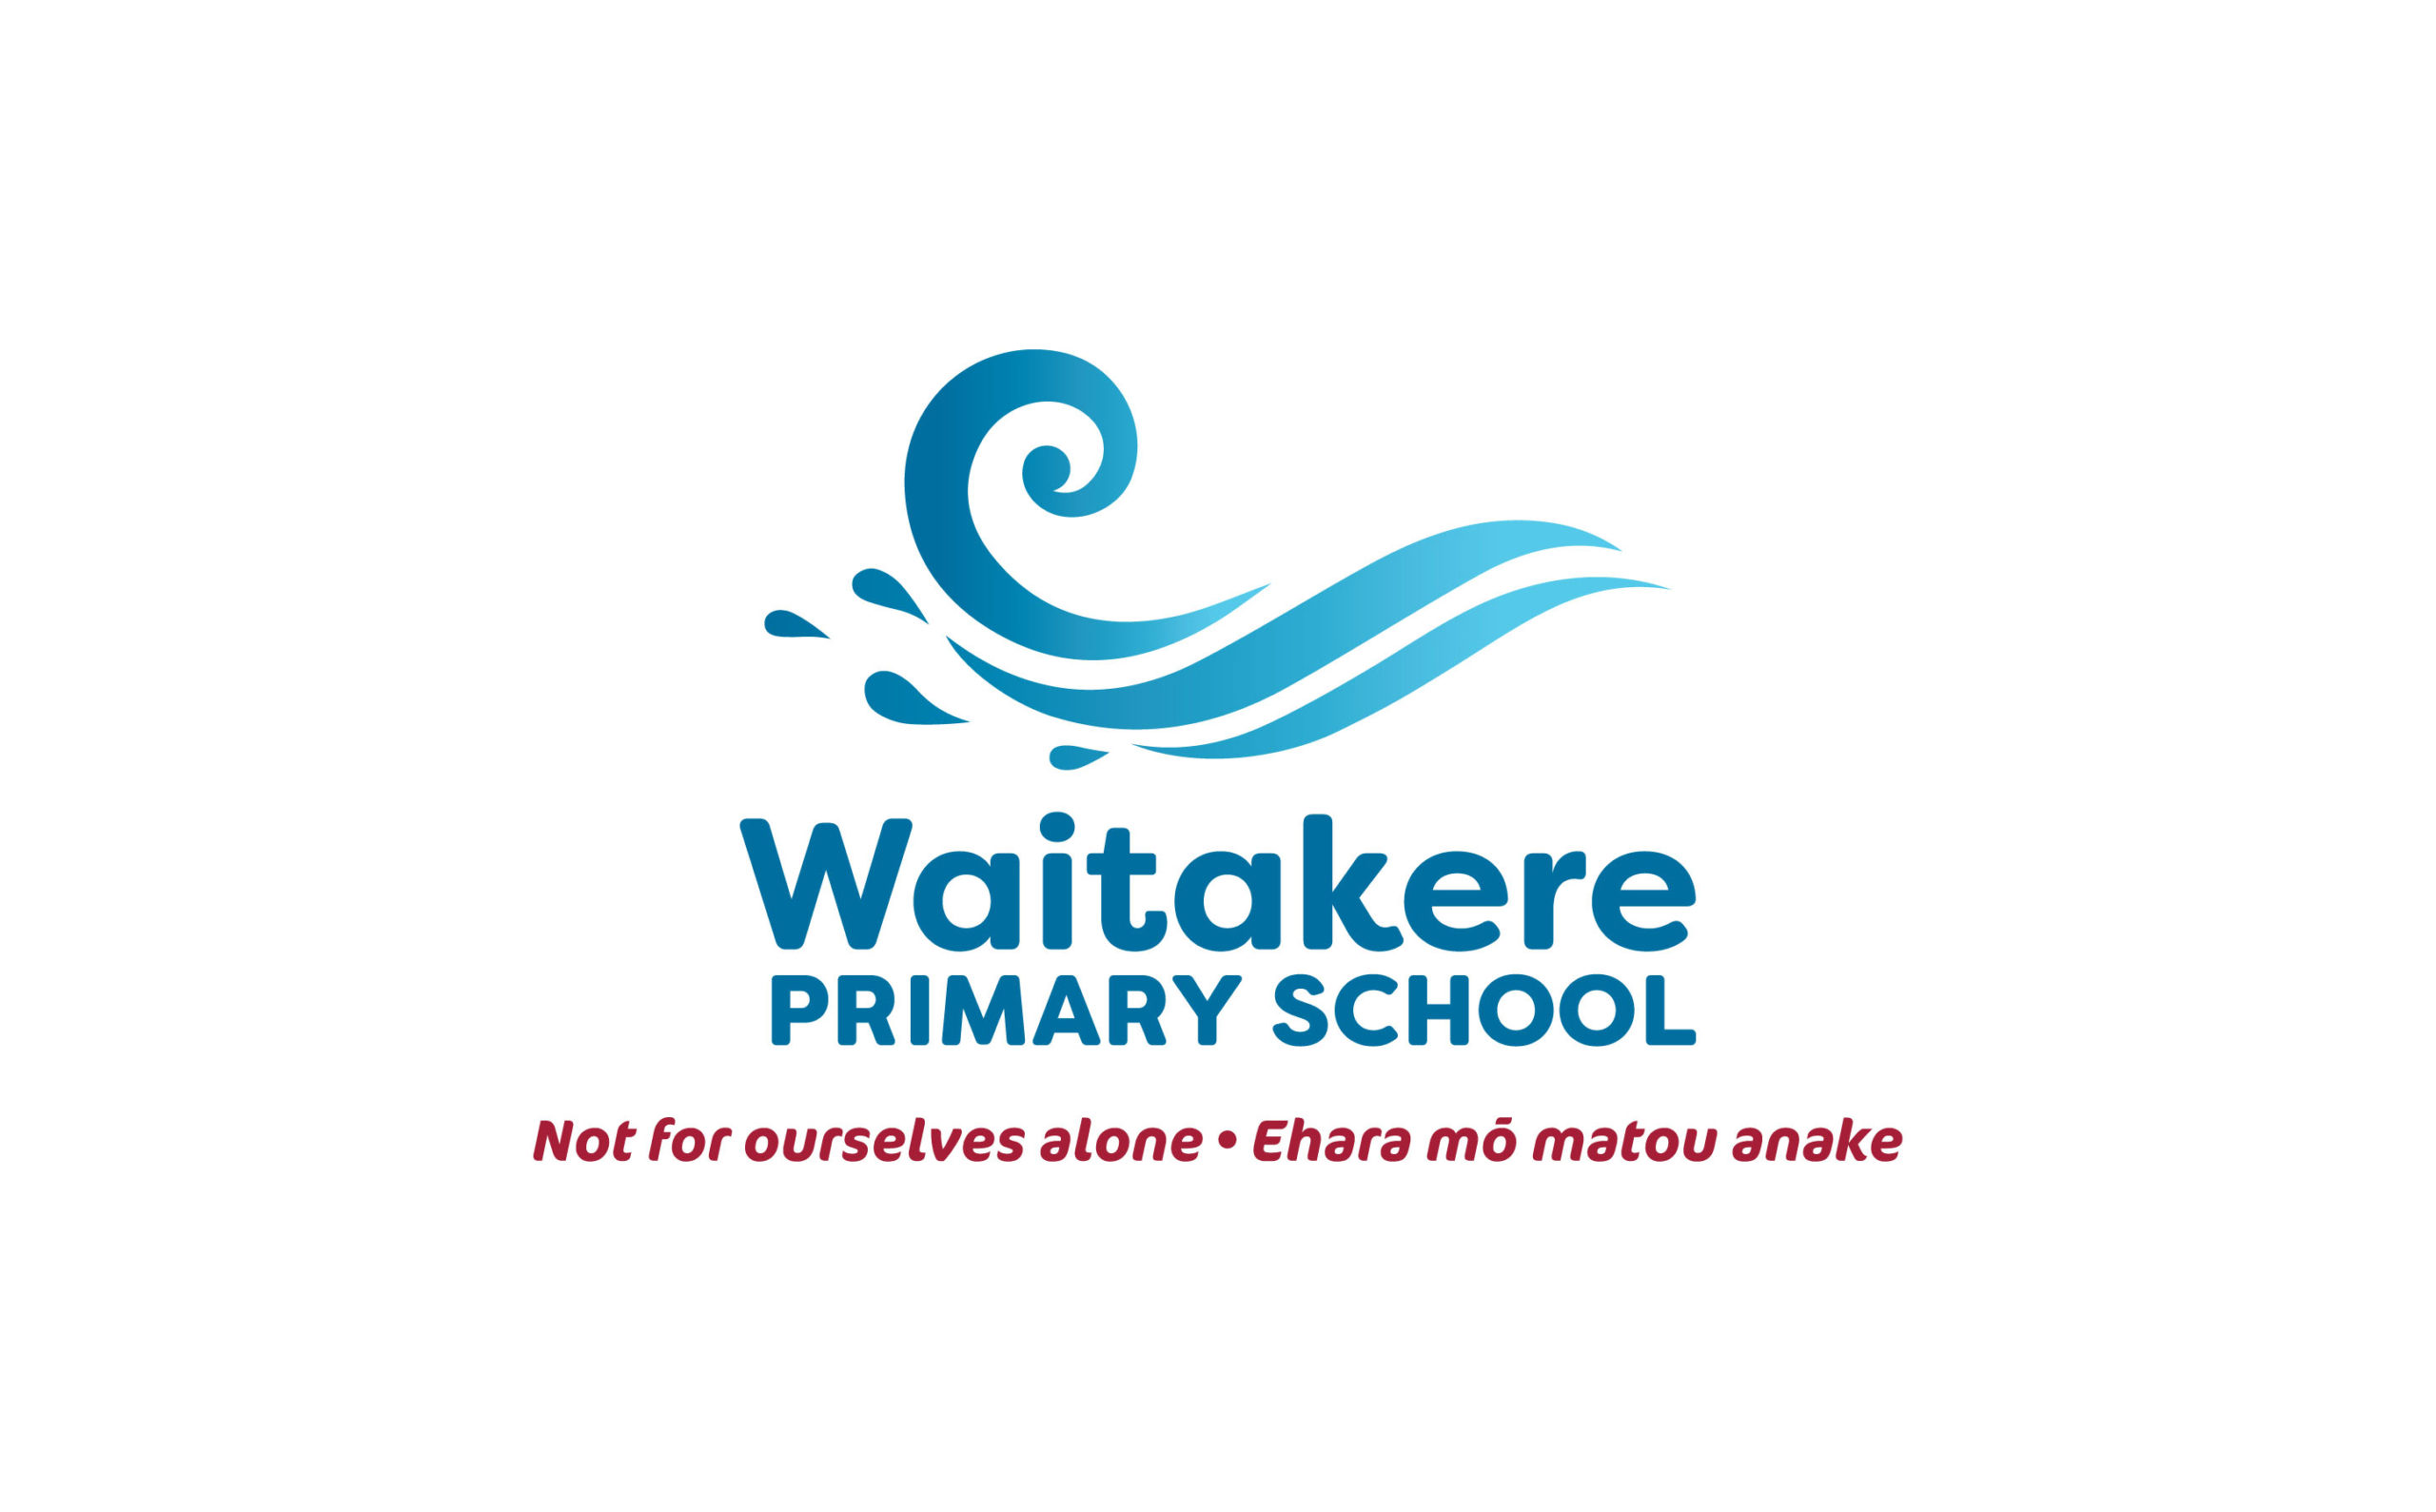 Waitakere Primary School